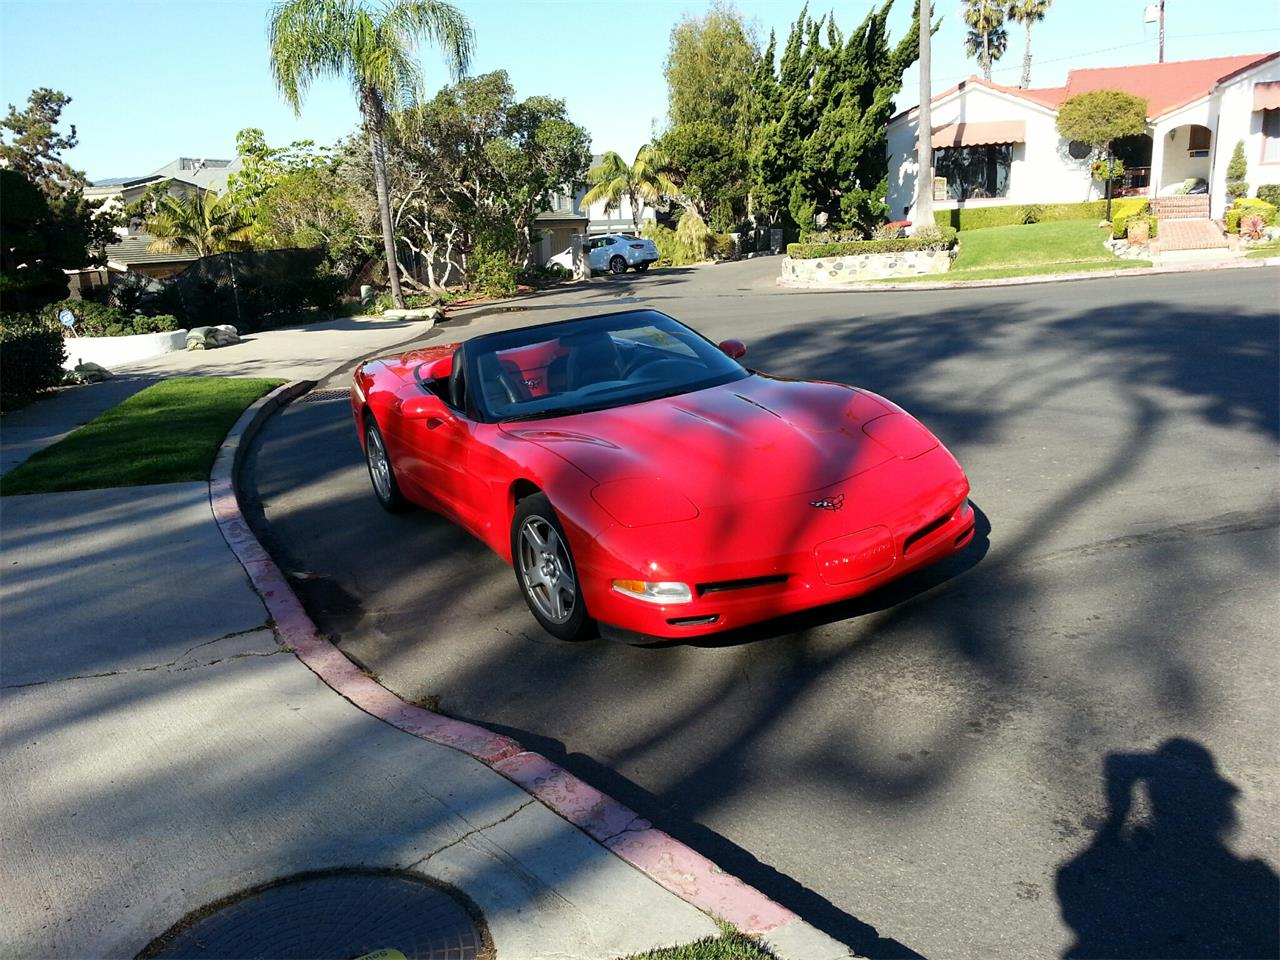 Large Picture of '98 Chevrolet Corvette located in California - $22,000.00 - G8R7